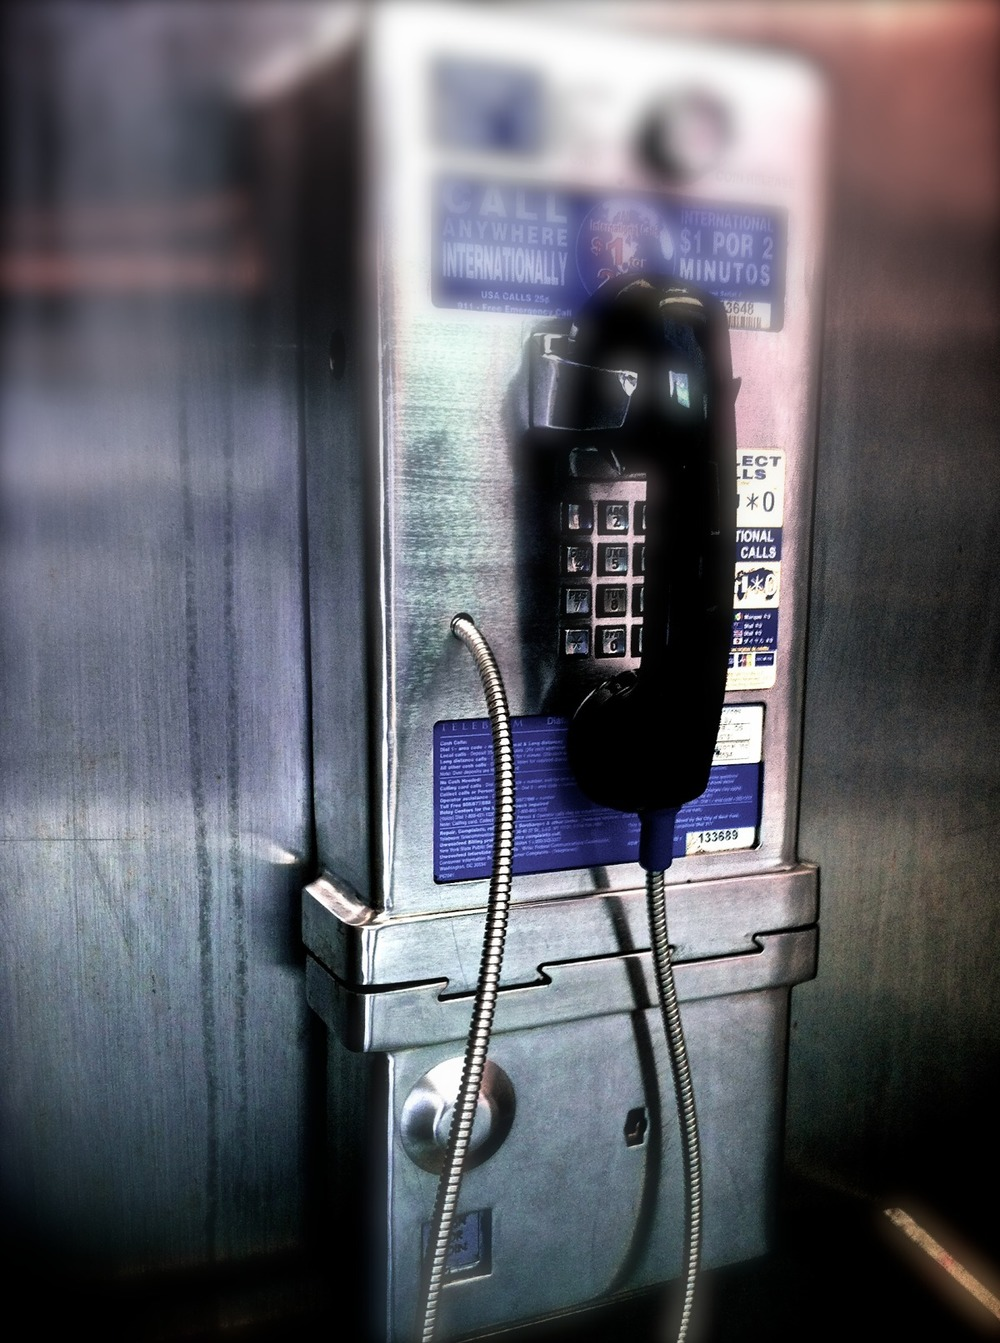 payphone export july 2012 7.jpg